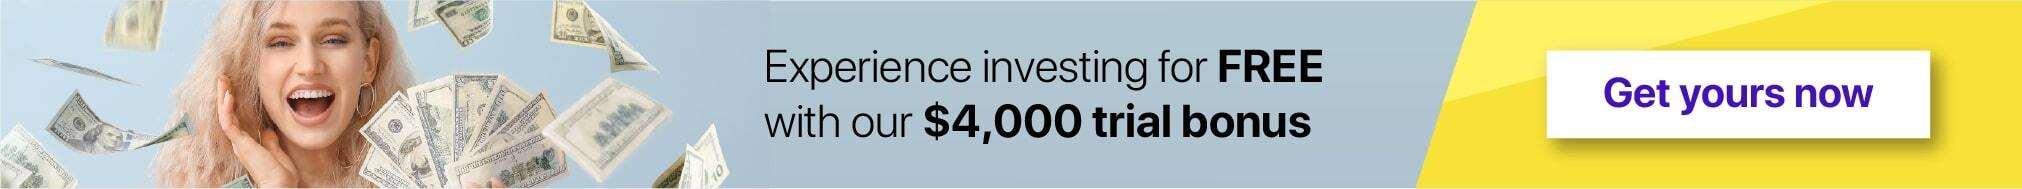 Experience investing for free